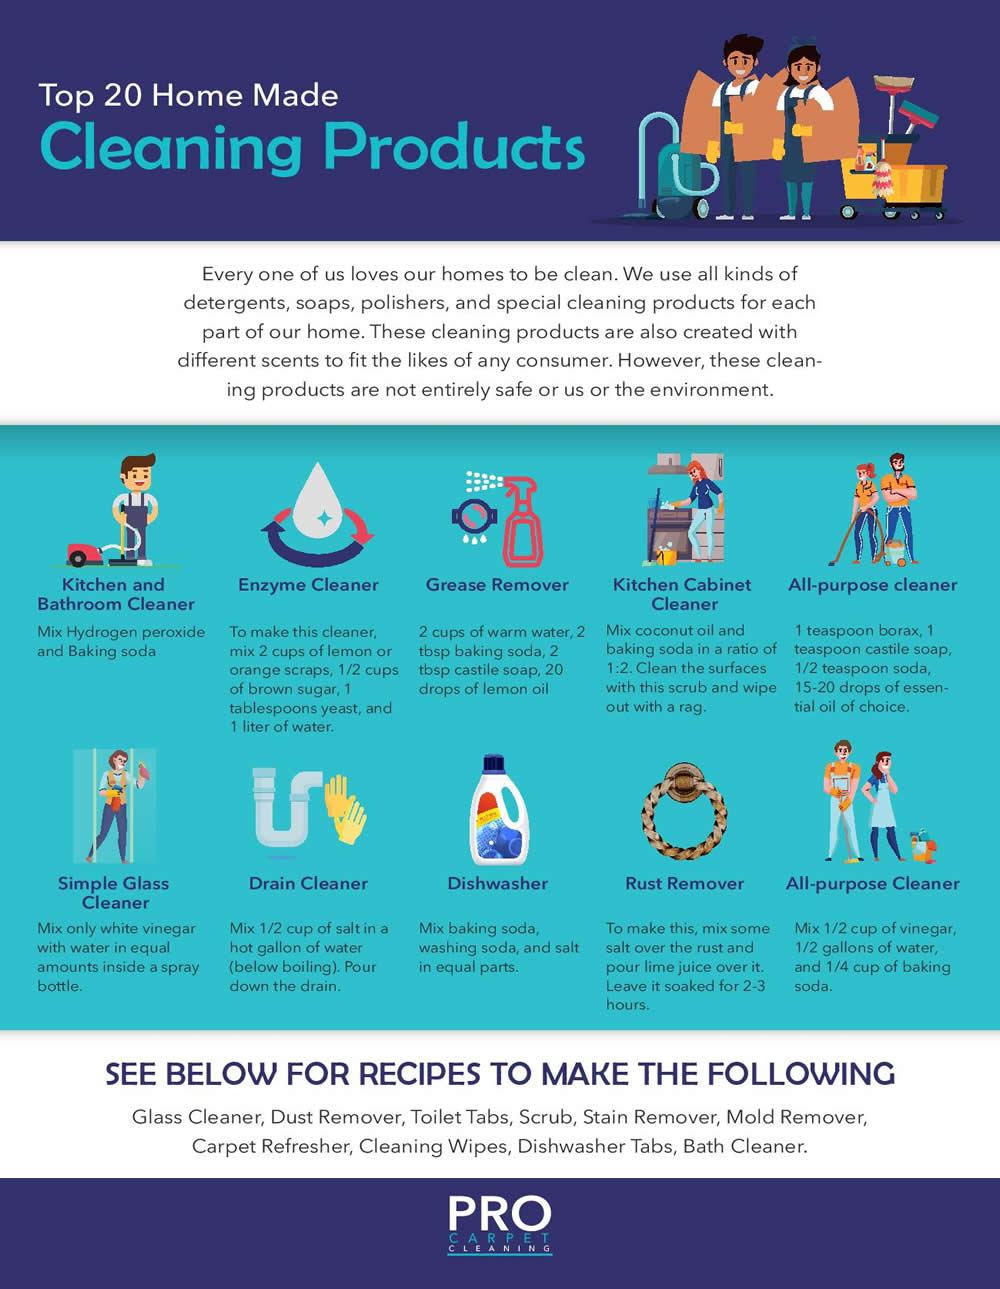 Top 20 Home Made Cleaning Products